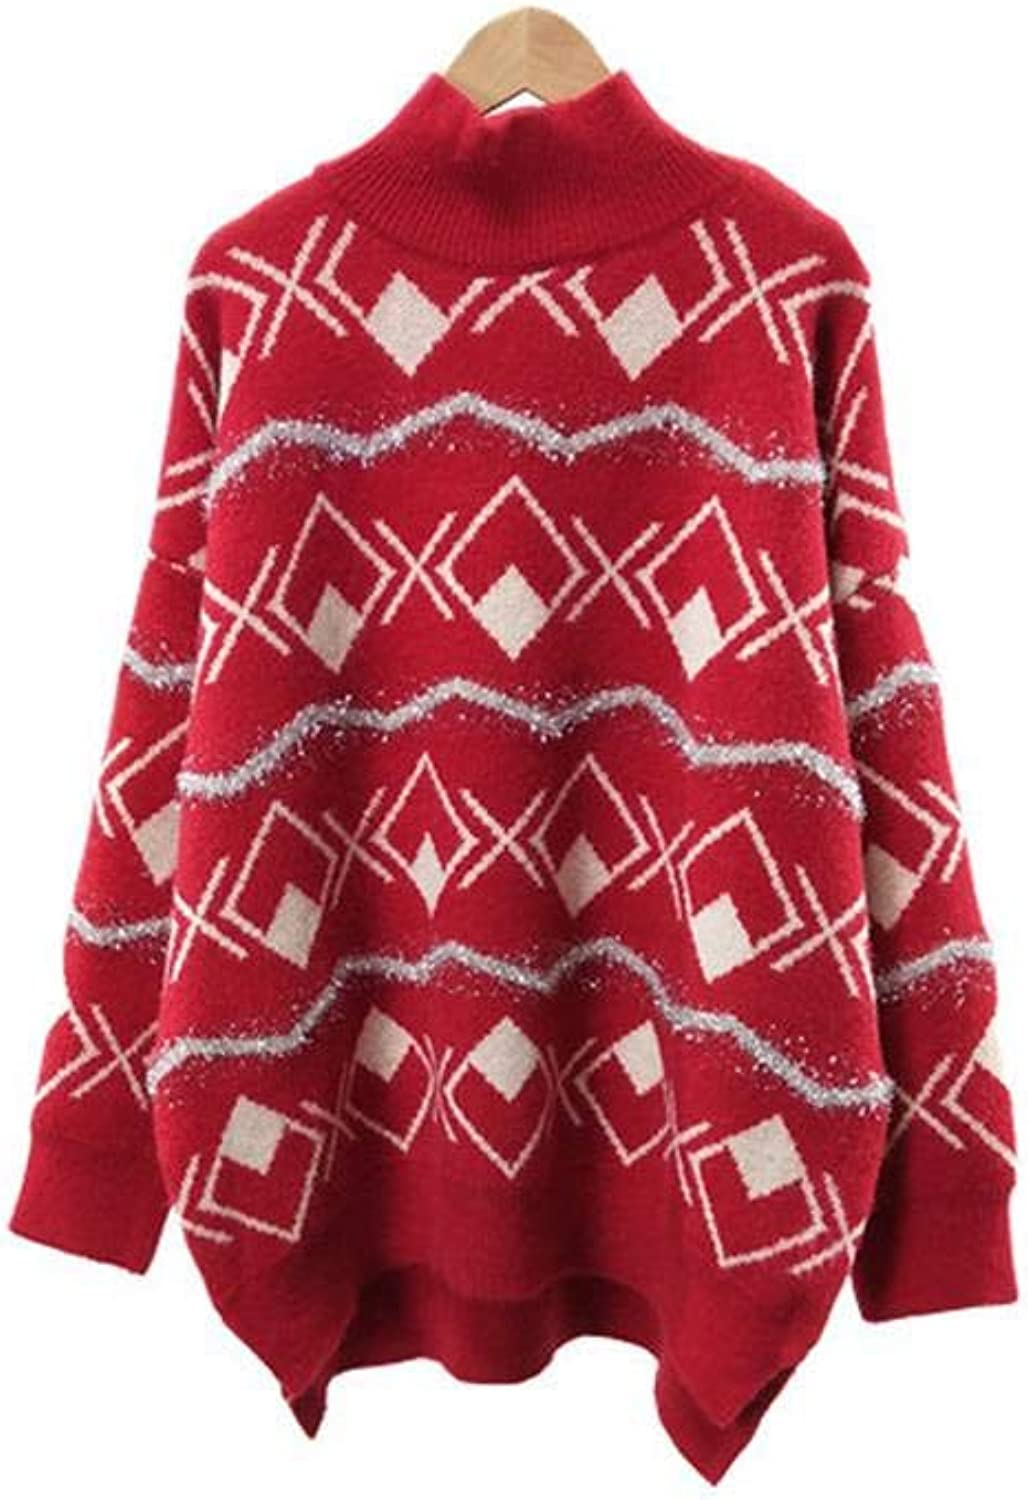 Roohb Autumn Winter HighNeck Women's Knit Loose Christmas Sweater